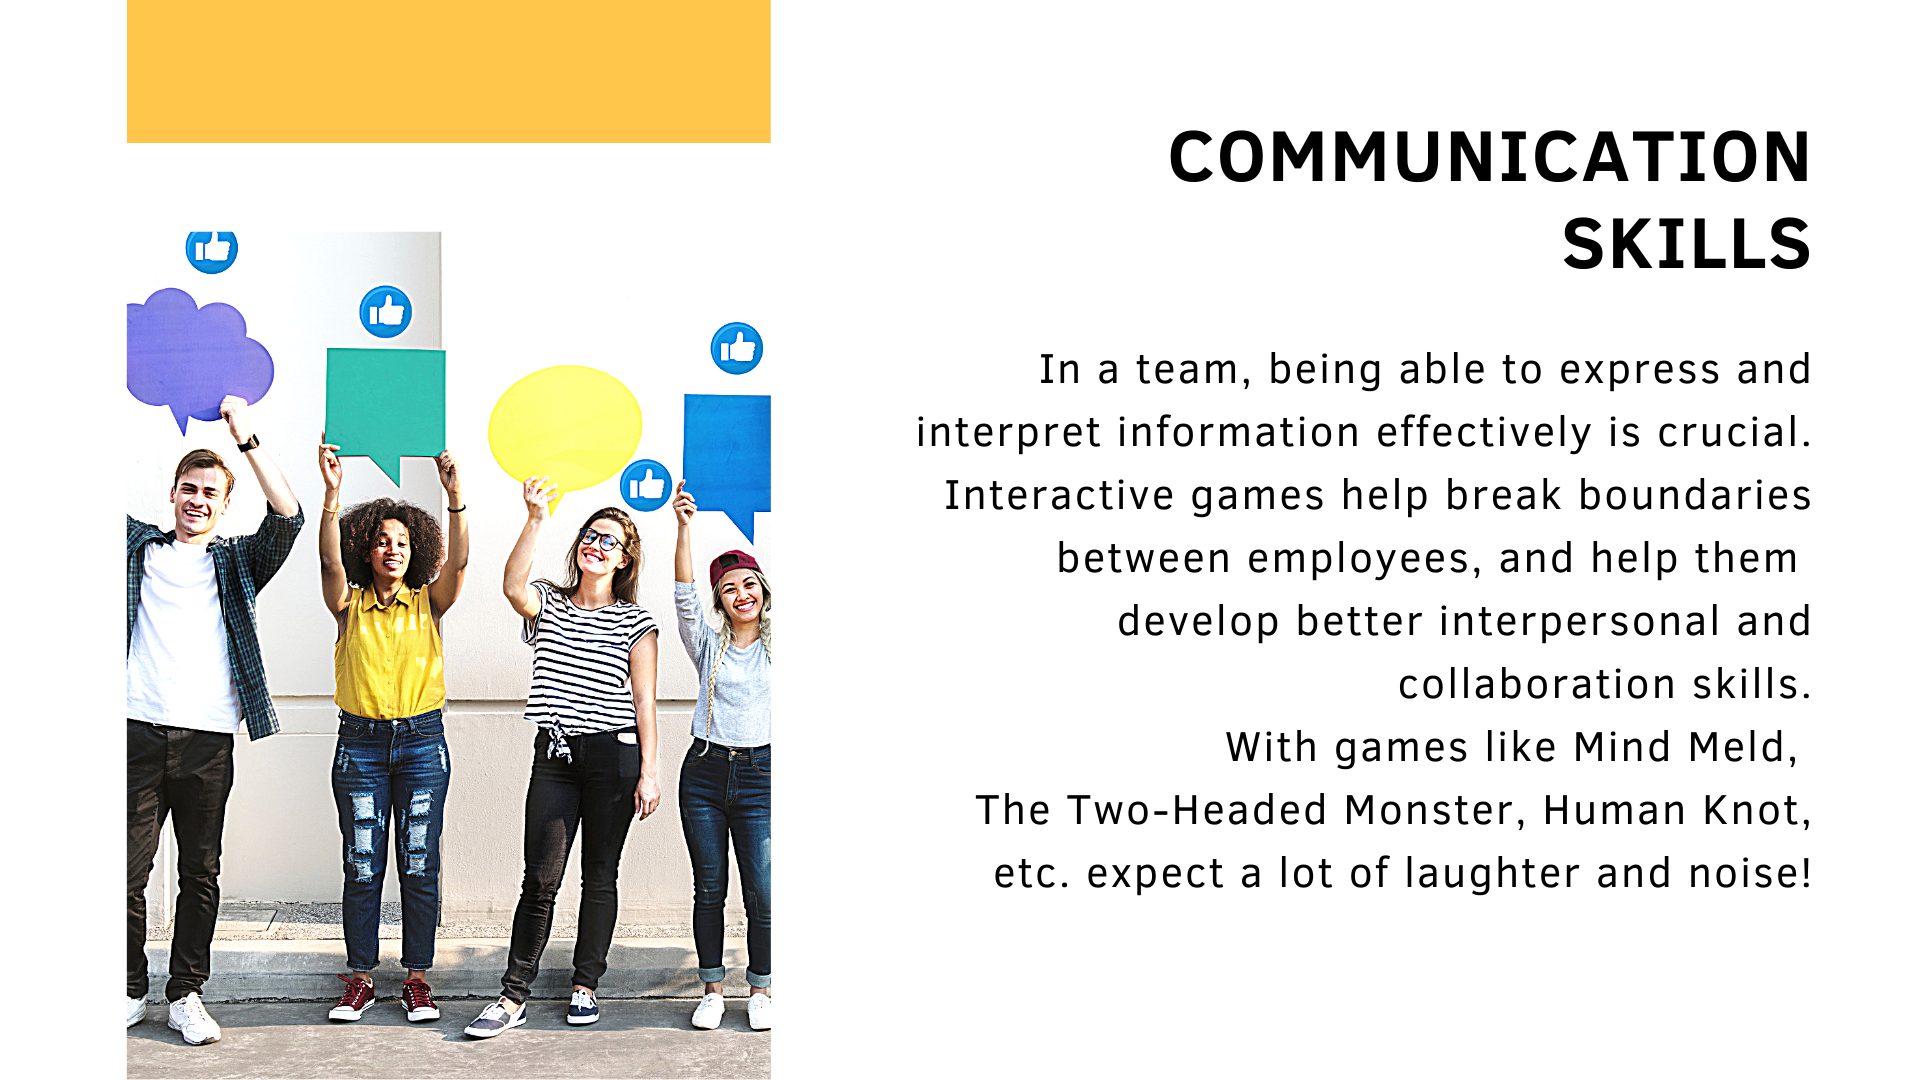 Communication skills. In a team, being able to express and interpret information effectively is crucial. Interactive games help break boundaries between employees, and help them  develop better interpersonal and collaboration skills. With games like Mind Meld,  The Two-Headed Monster, Human Knot, etc. expect a lot of laughter and noise!